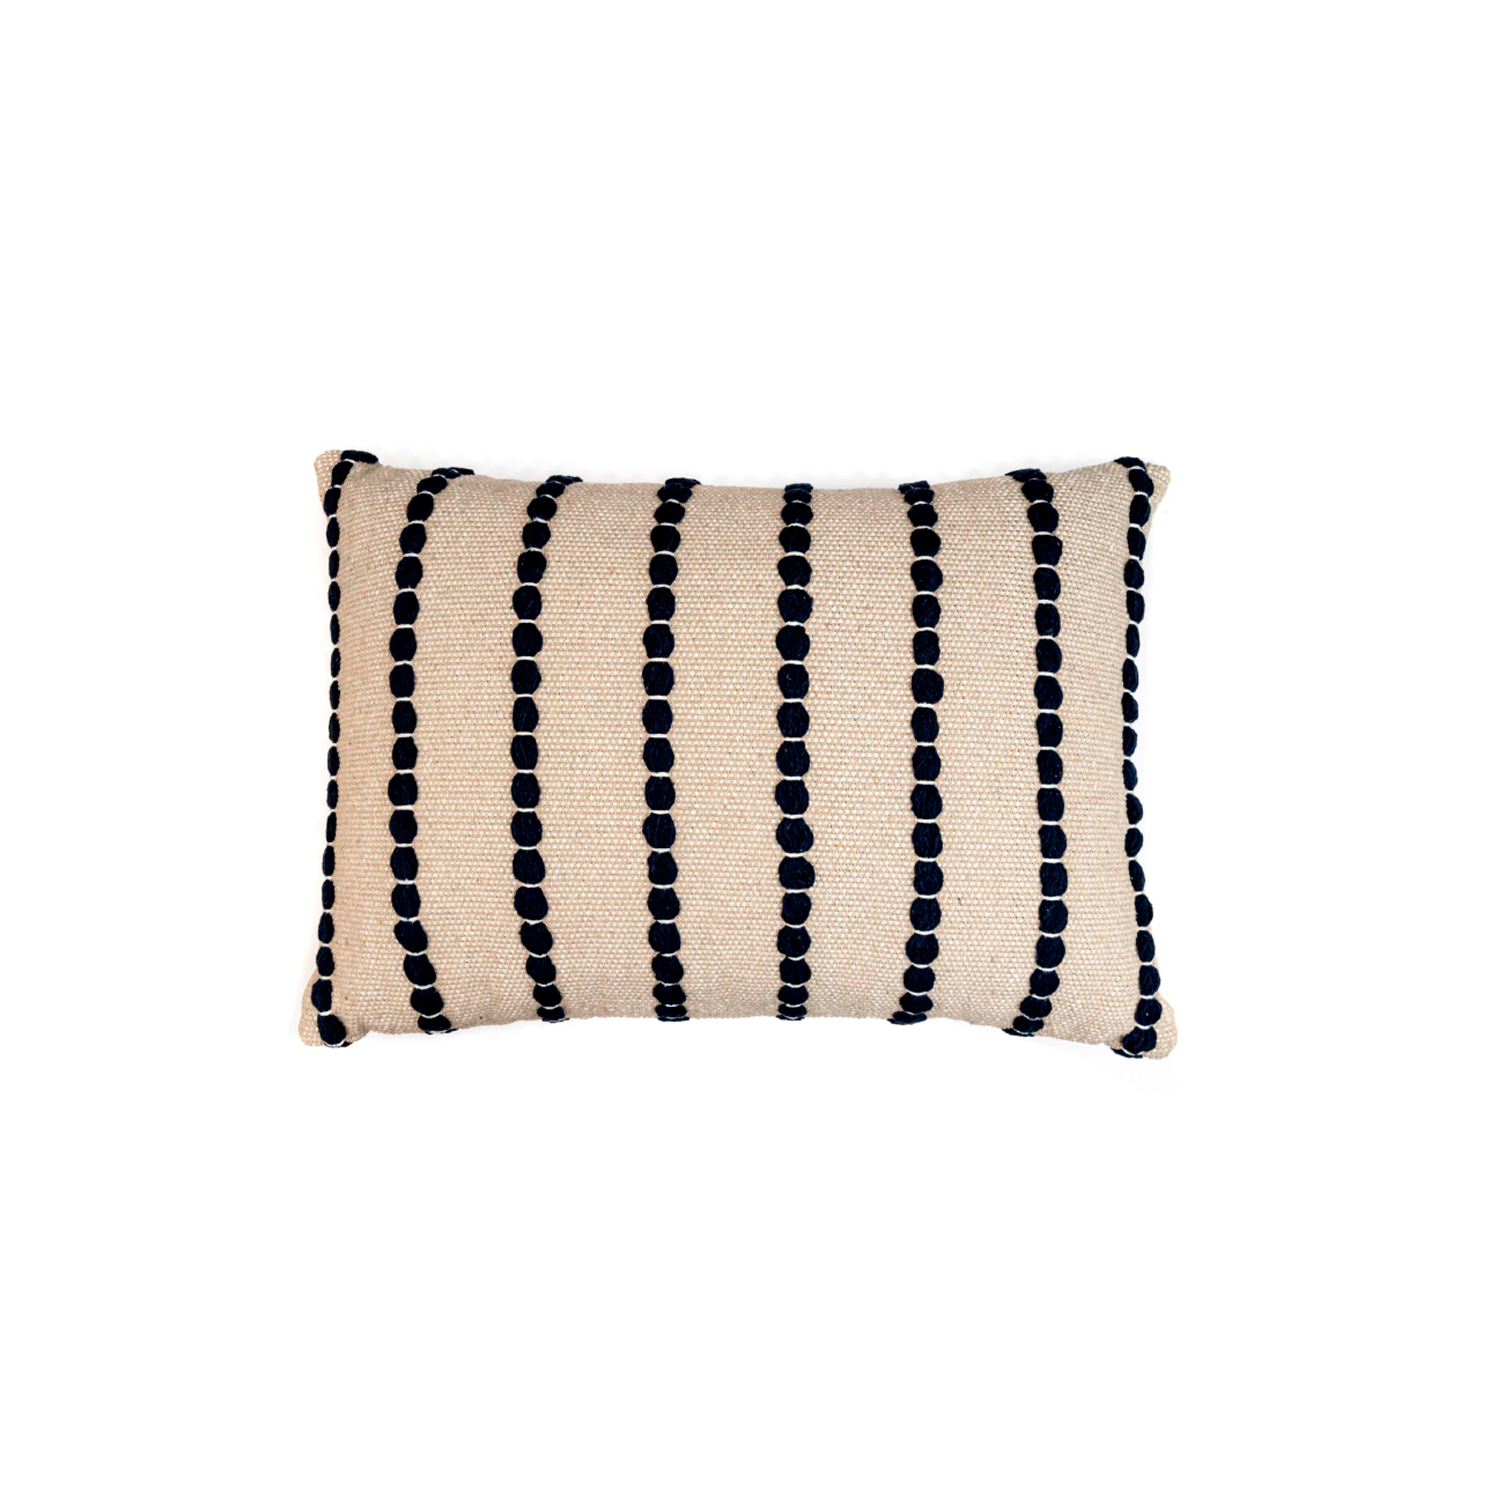 Lua Noite Cotton Cushion Large - The Flame Sustainable Collection is made from a selection of organic cotton fibres, eco-friendly, hand-woven or elaborated using traditional hand-loom techniques. Carefully knitted within a trained community of women that found in their craft a way to provide their families.  This collection combines Elisa Atheniense mission for responsible sourcing and manufacturing. Each piece is meticulously hand-loom by artisans who practised methods with age-old techniques. With a minimal electricity impact, each item crafted is therefore unique and exclusive. Weavers and artisans are the ultimate lifelines of Elisa Atheniense Home Products.  The hand woven cotton, washable cushion cover is made in Brazil and the inner cushion is made in the UK.   | Matter of Stuff